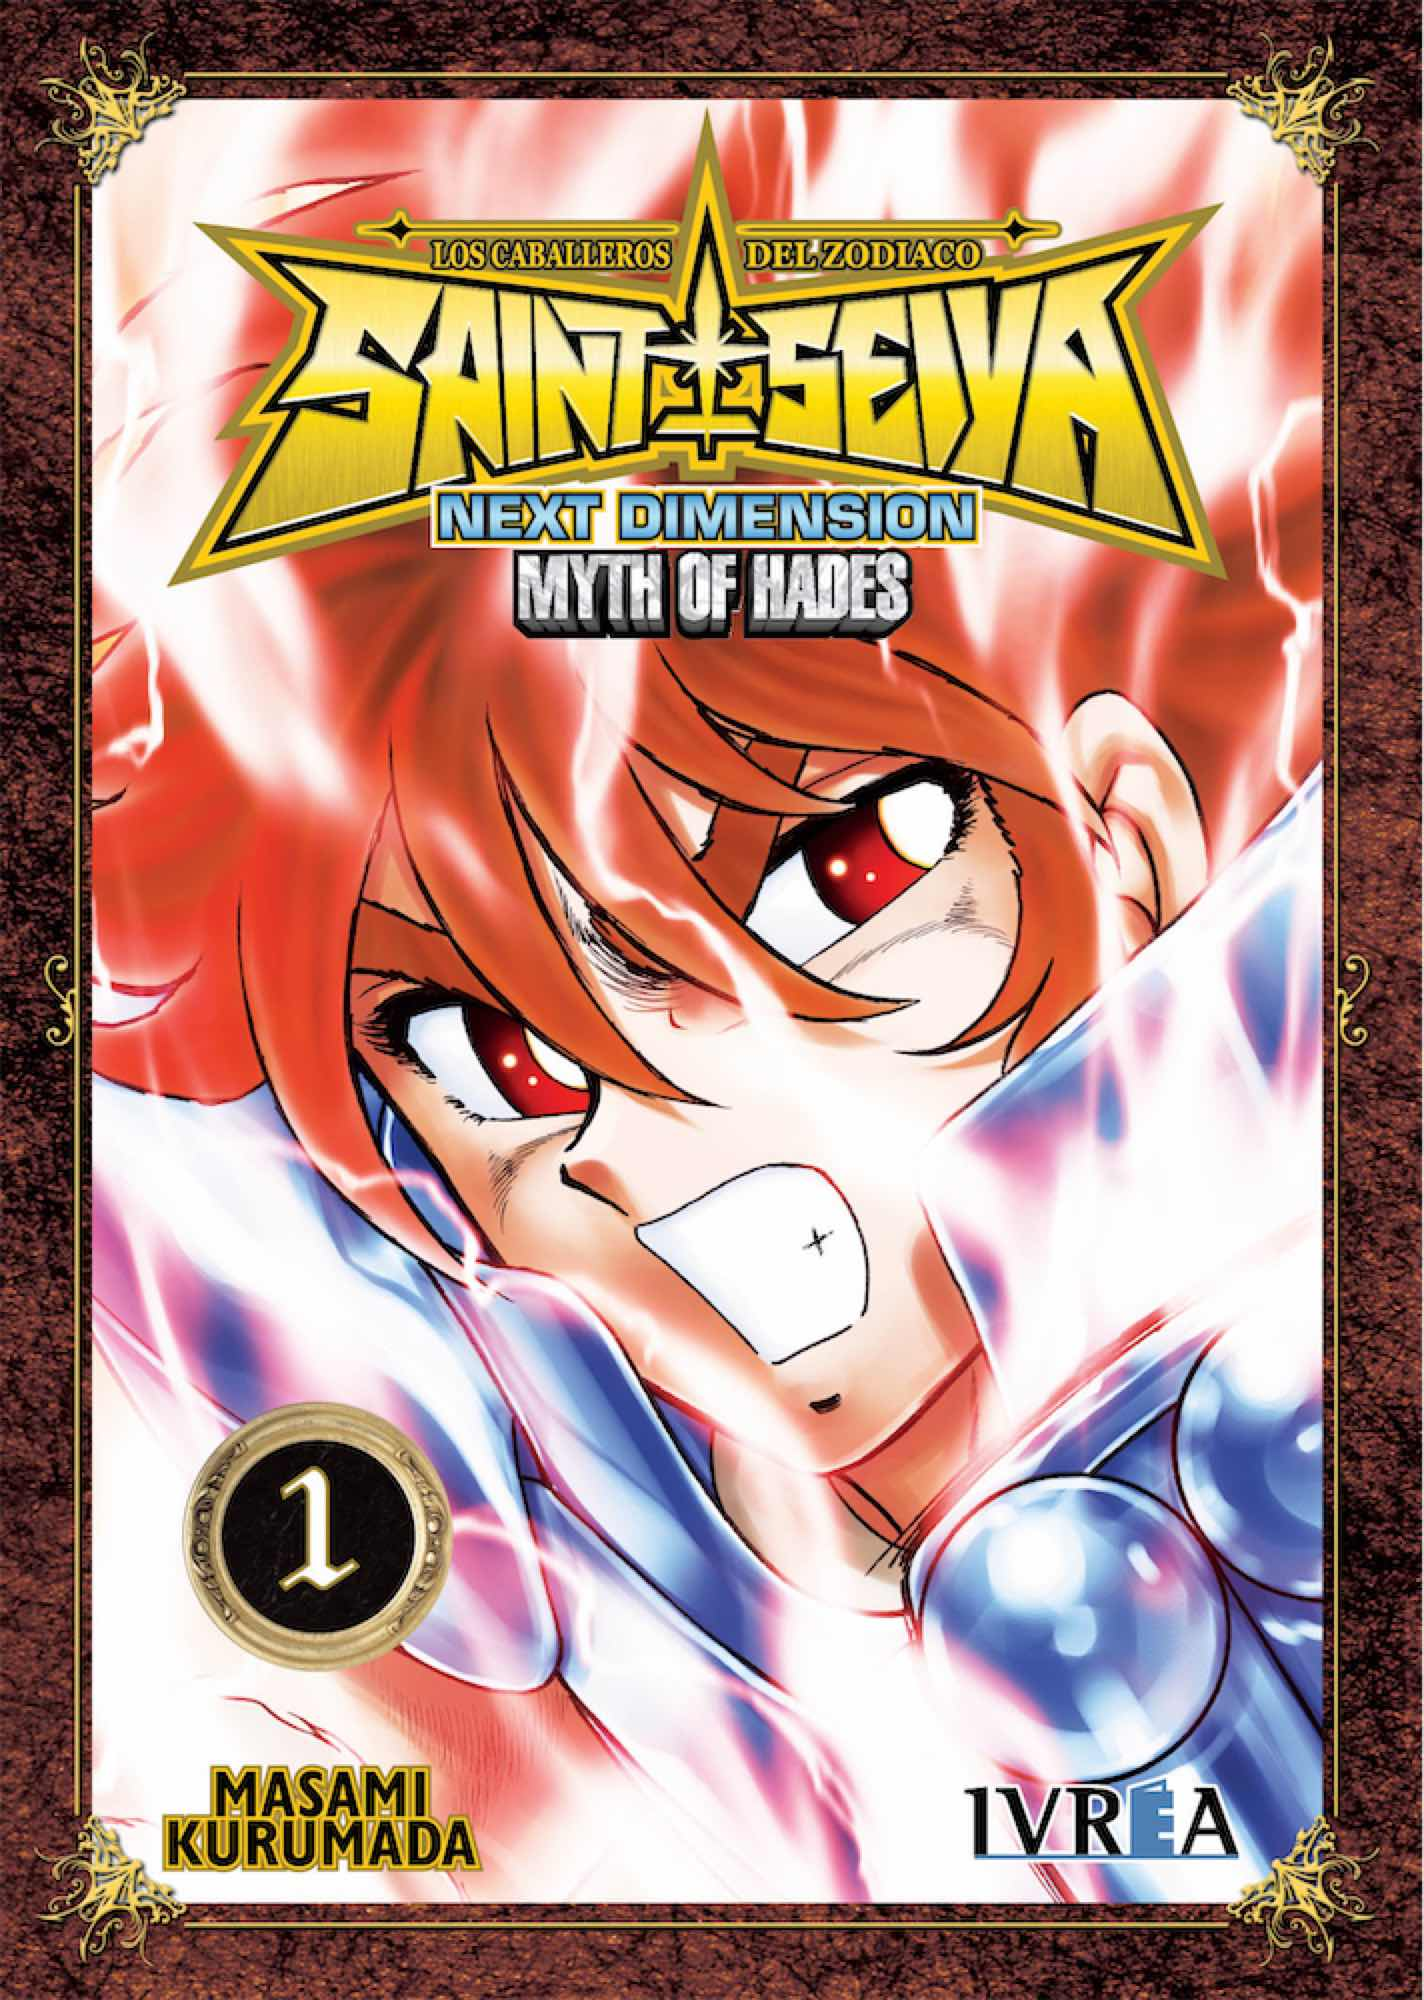 SAINT SEIYA. NEXT DIMENSION MYTH OF HADES 01 (COMIC)